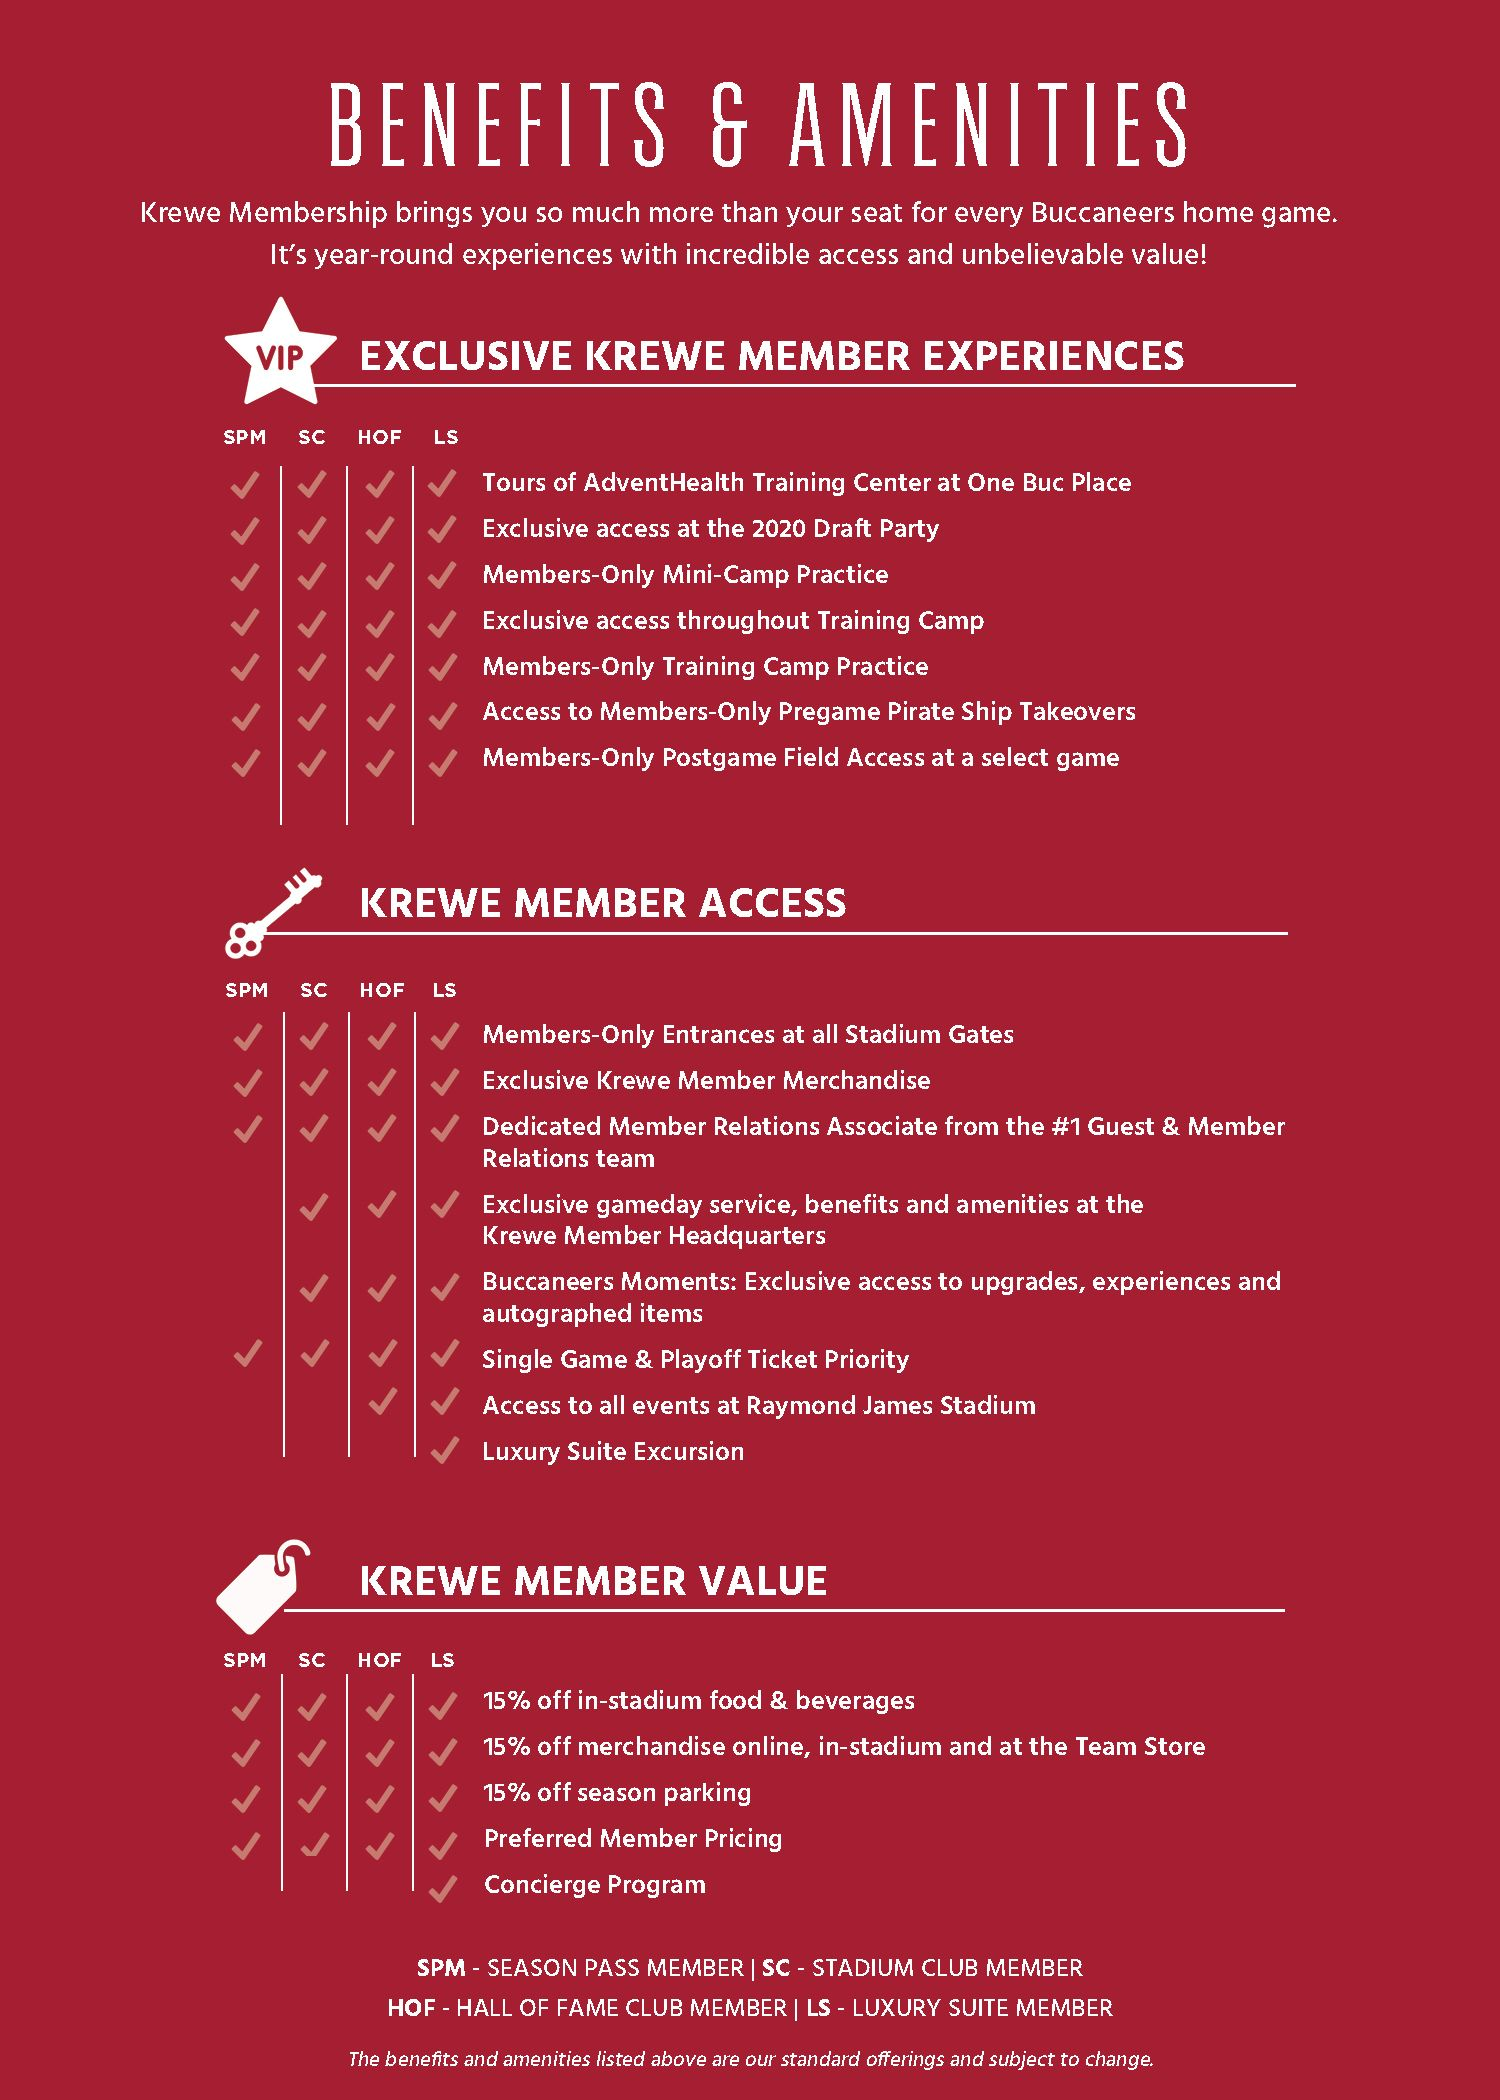 Members Benefits: To learn more please visit https://am.ticketmaster.com/bucs/contactus#/